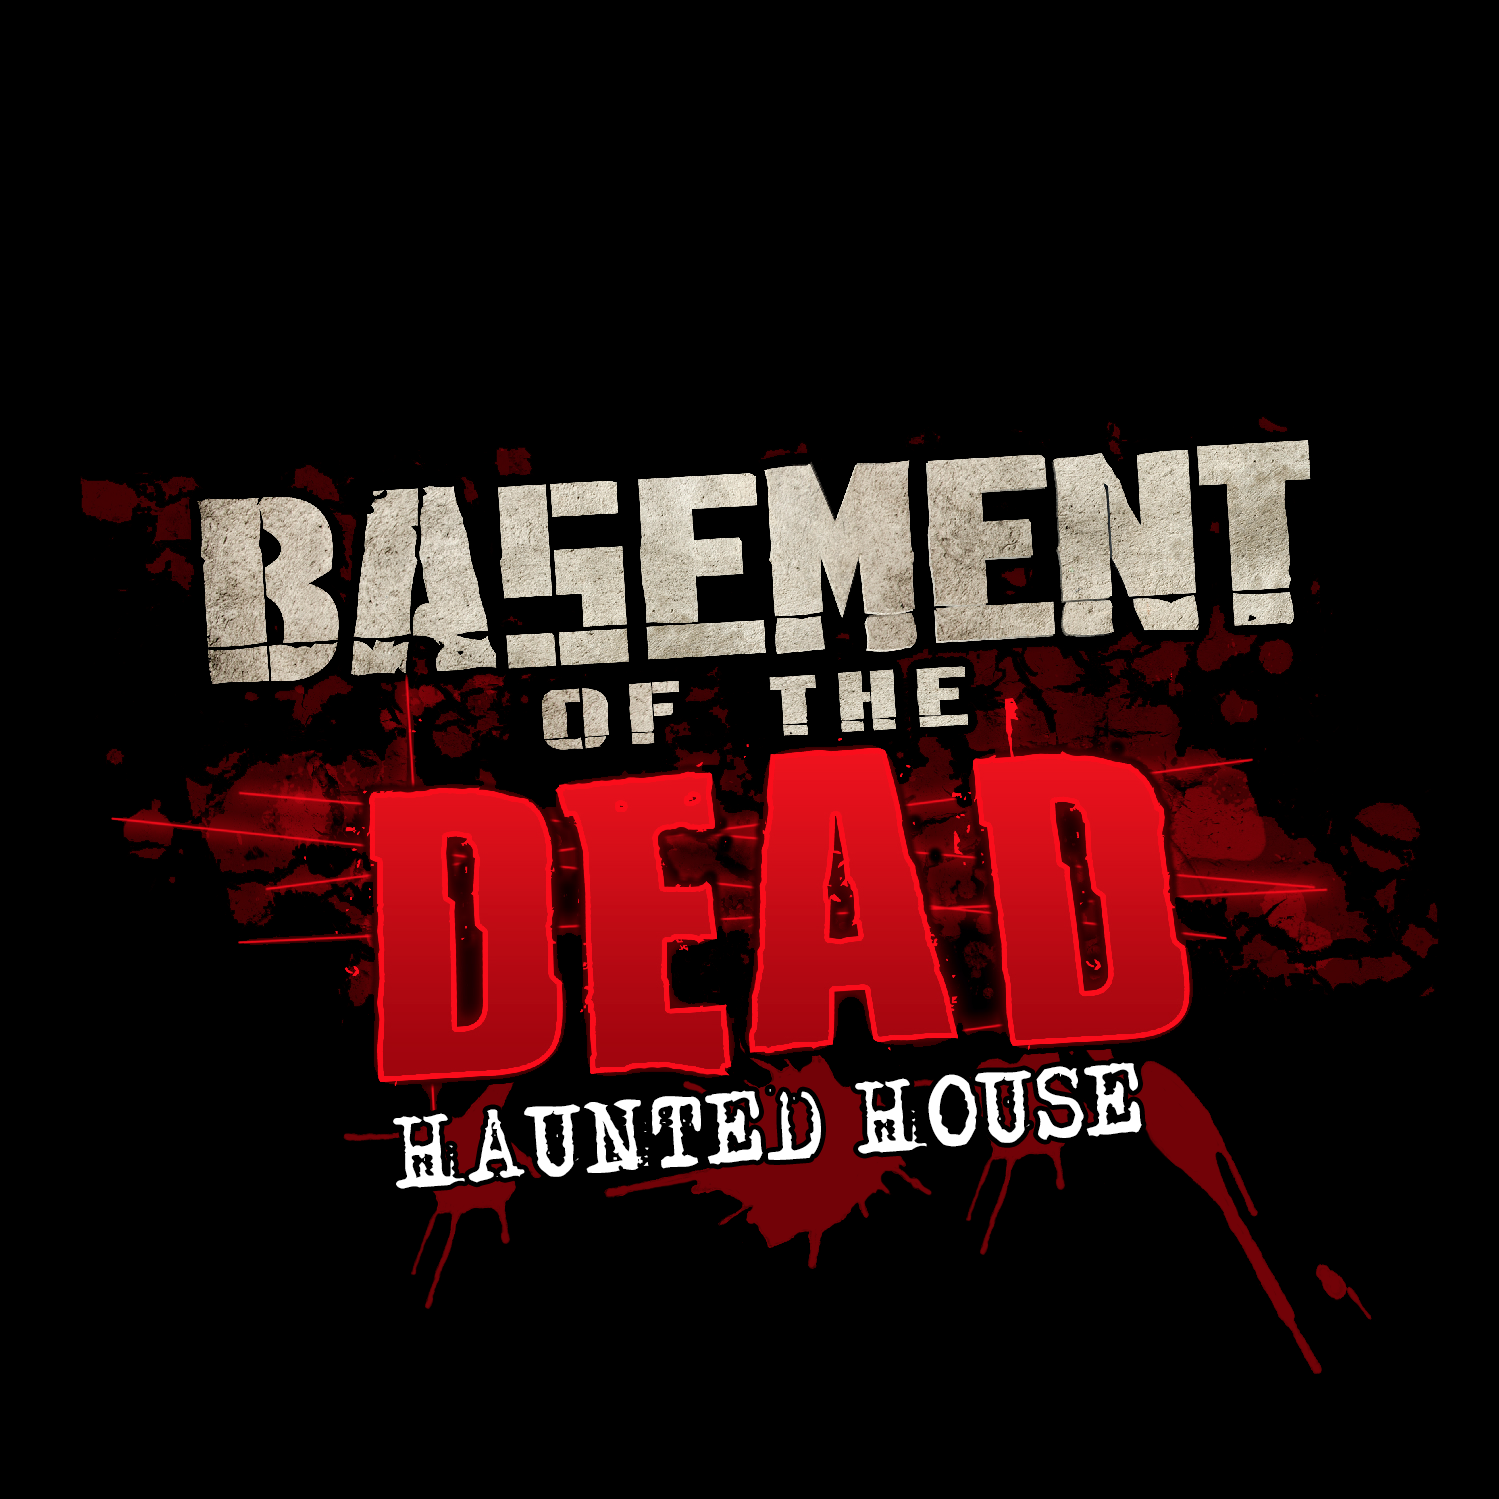 Basement of the Dead Haunted House image 5